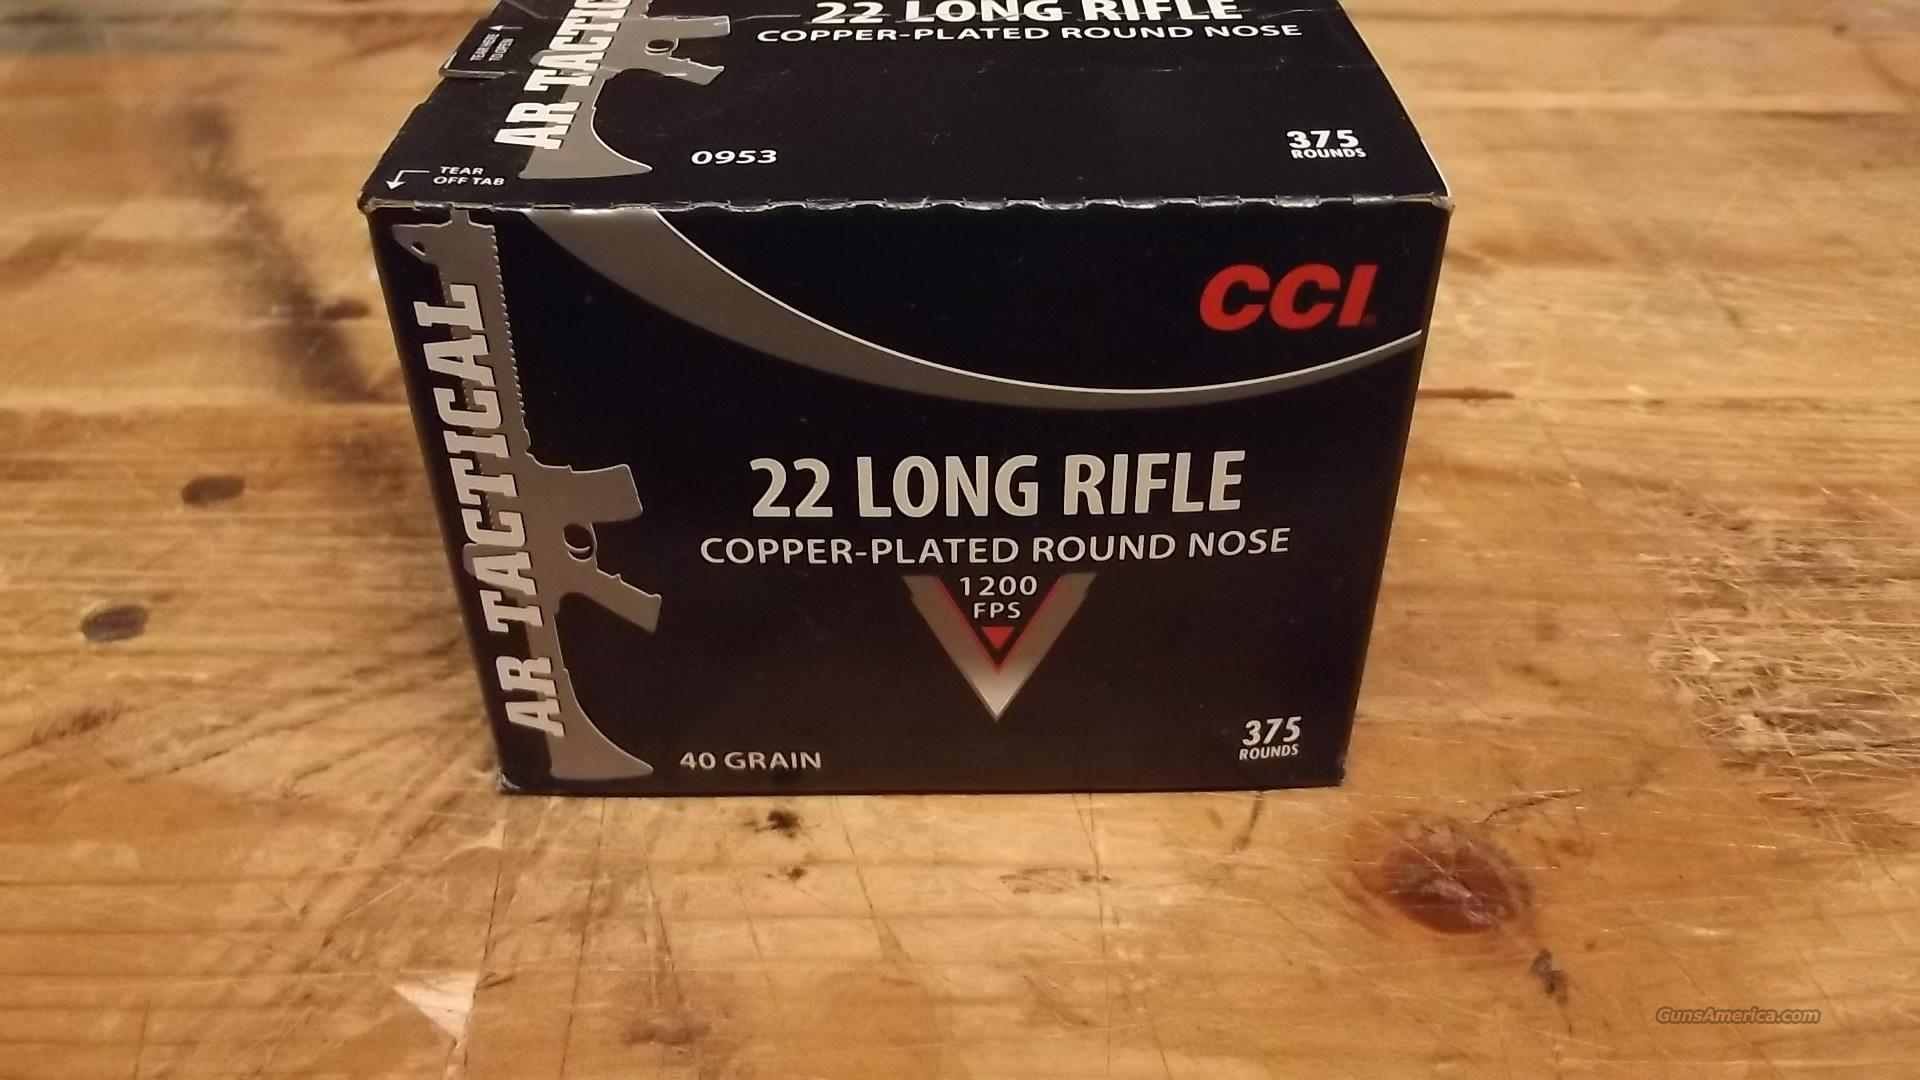 CCI    TACTICAL  22 AMMO         375 COUNT  Non-Guns > Ammunition